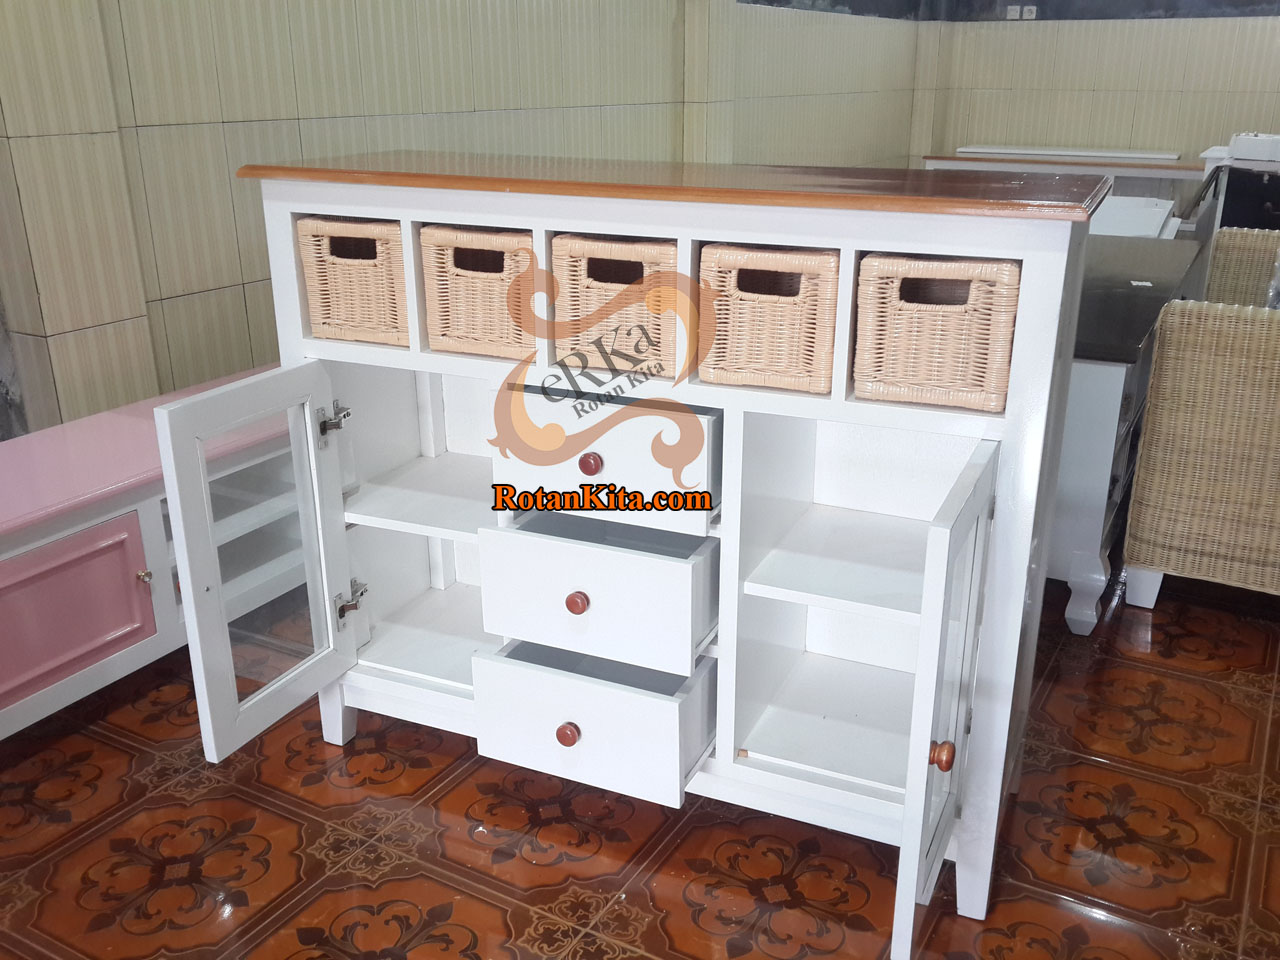 LRM203 9 copy Buffet | Code: LRM203